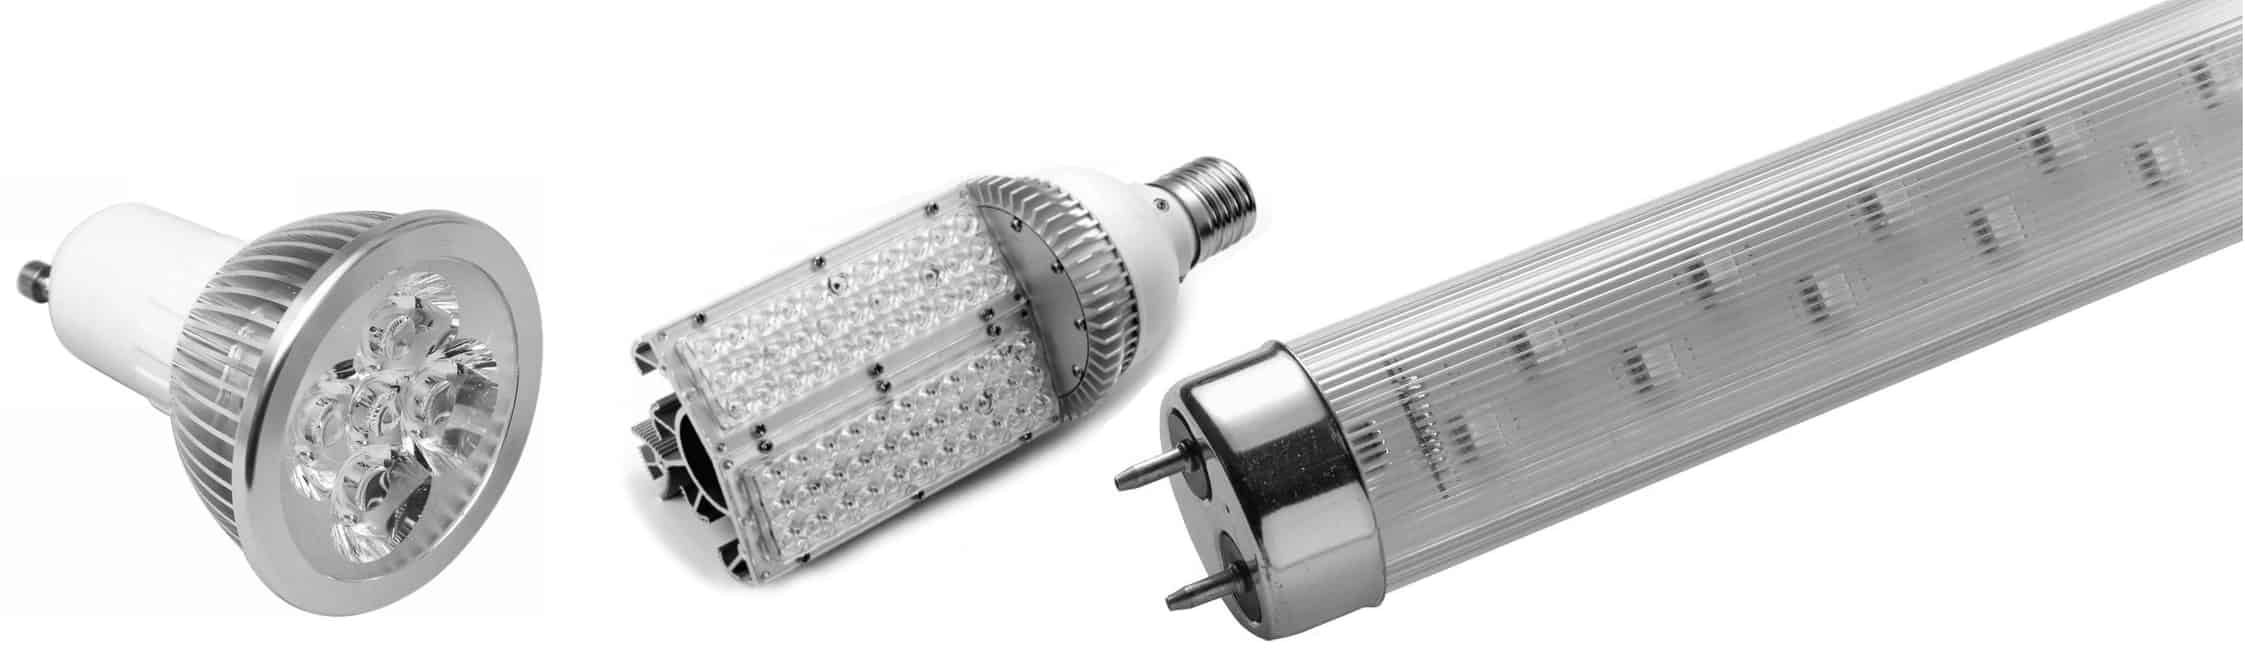 Lampade led strane new lampadine e tubi a led guida all for Acquisto lampadine led